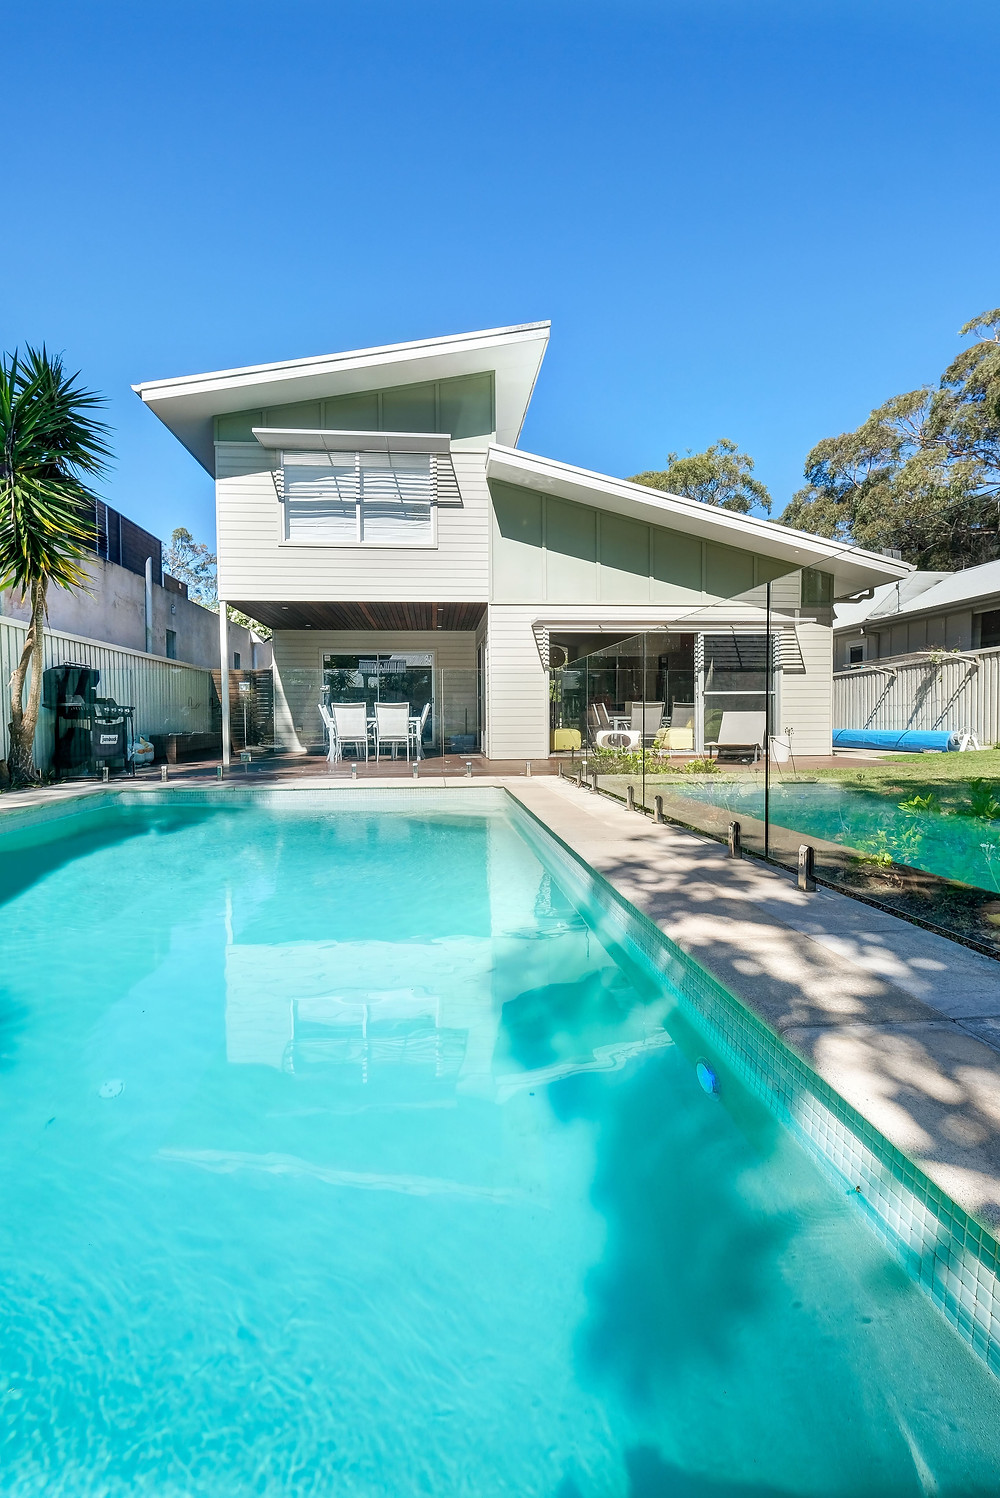 Real Estate Photography & Drone Photography Central Coast NSW